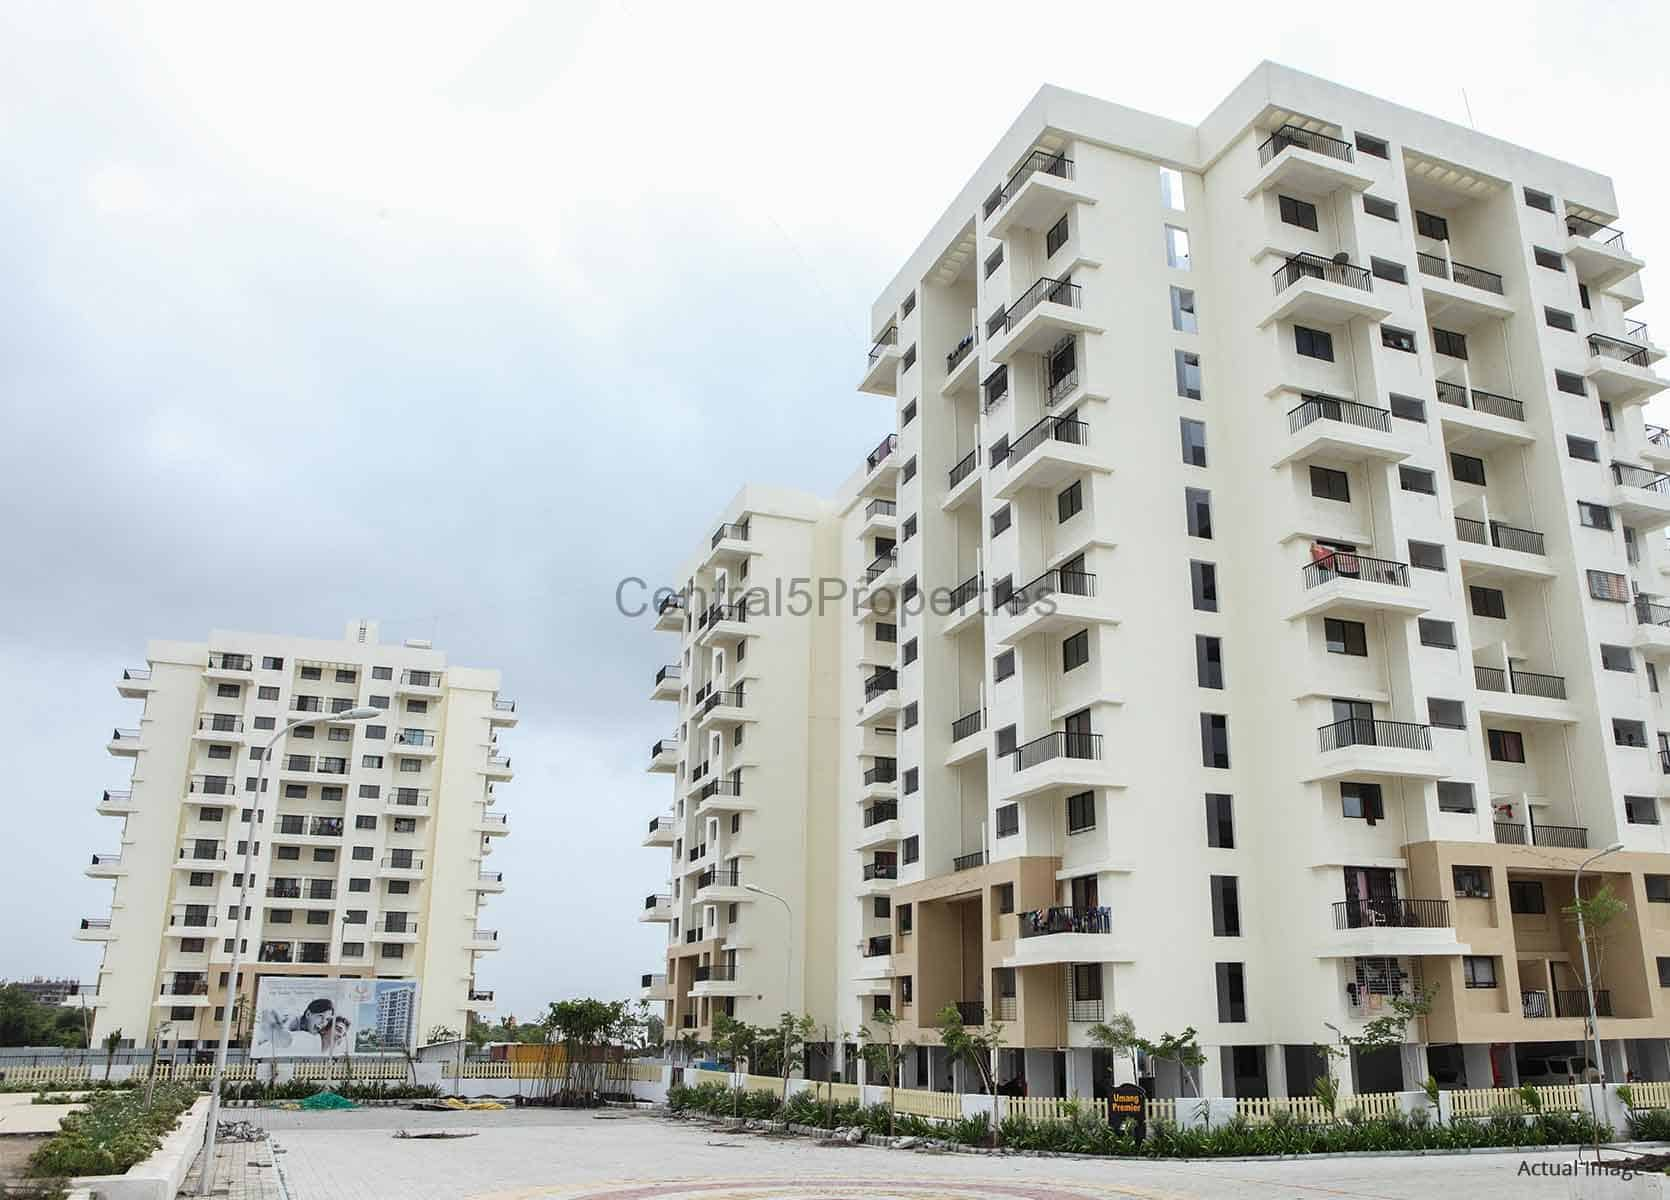 1BHK Flat for sale in Wagholi Pune